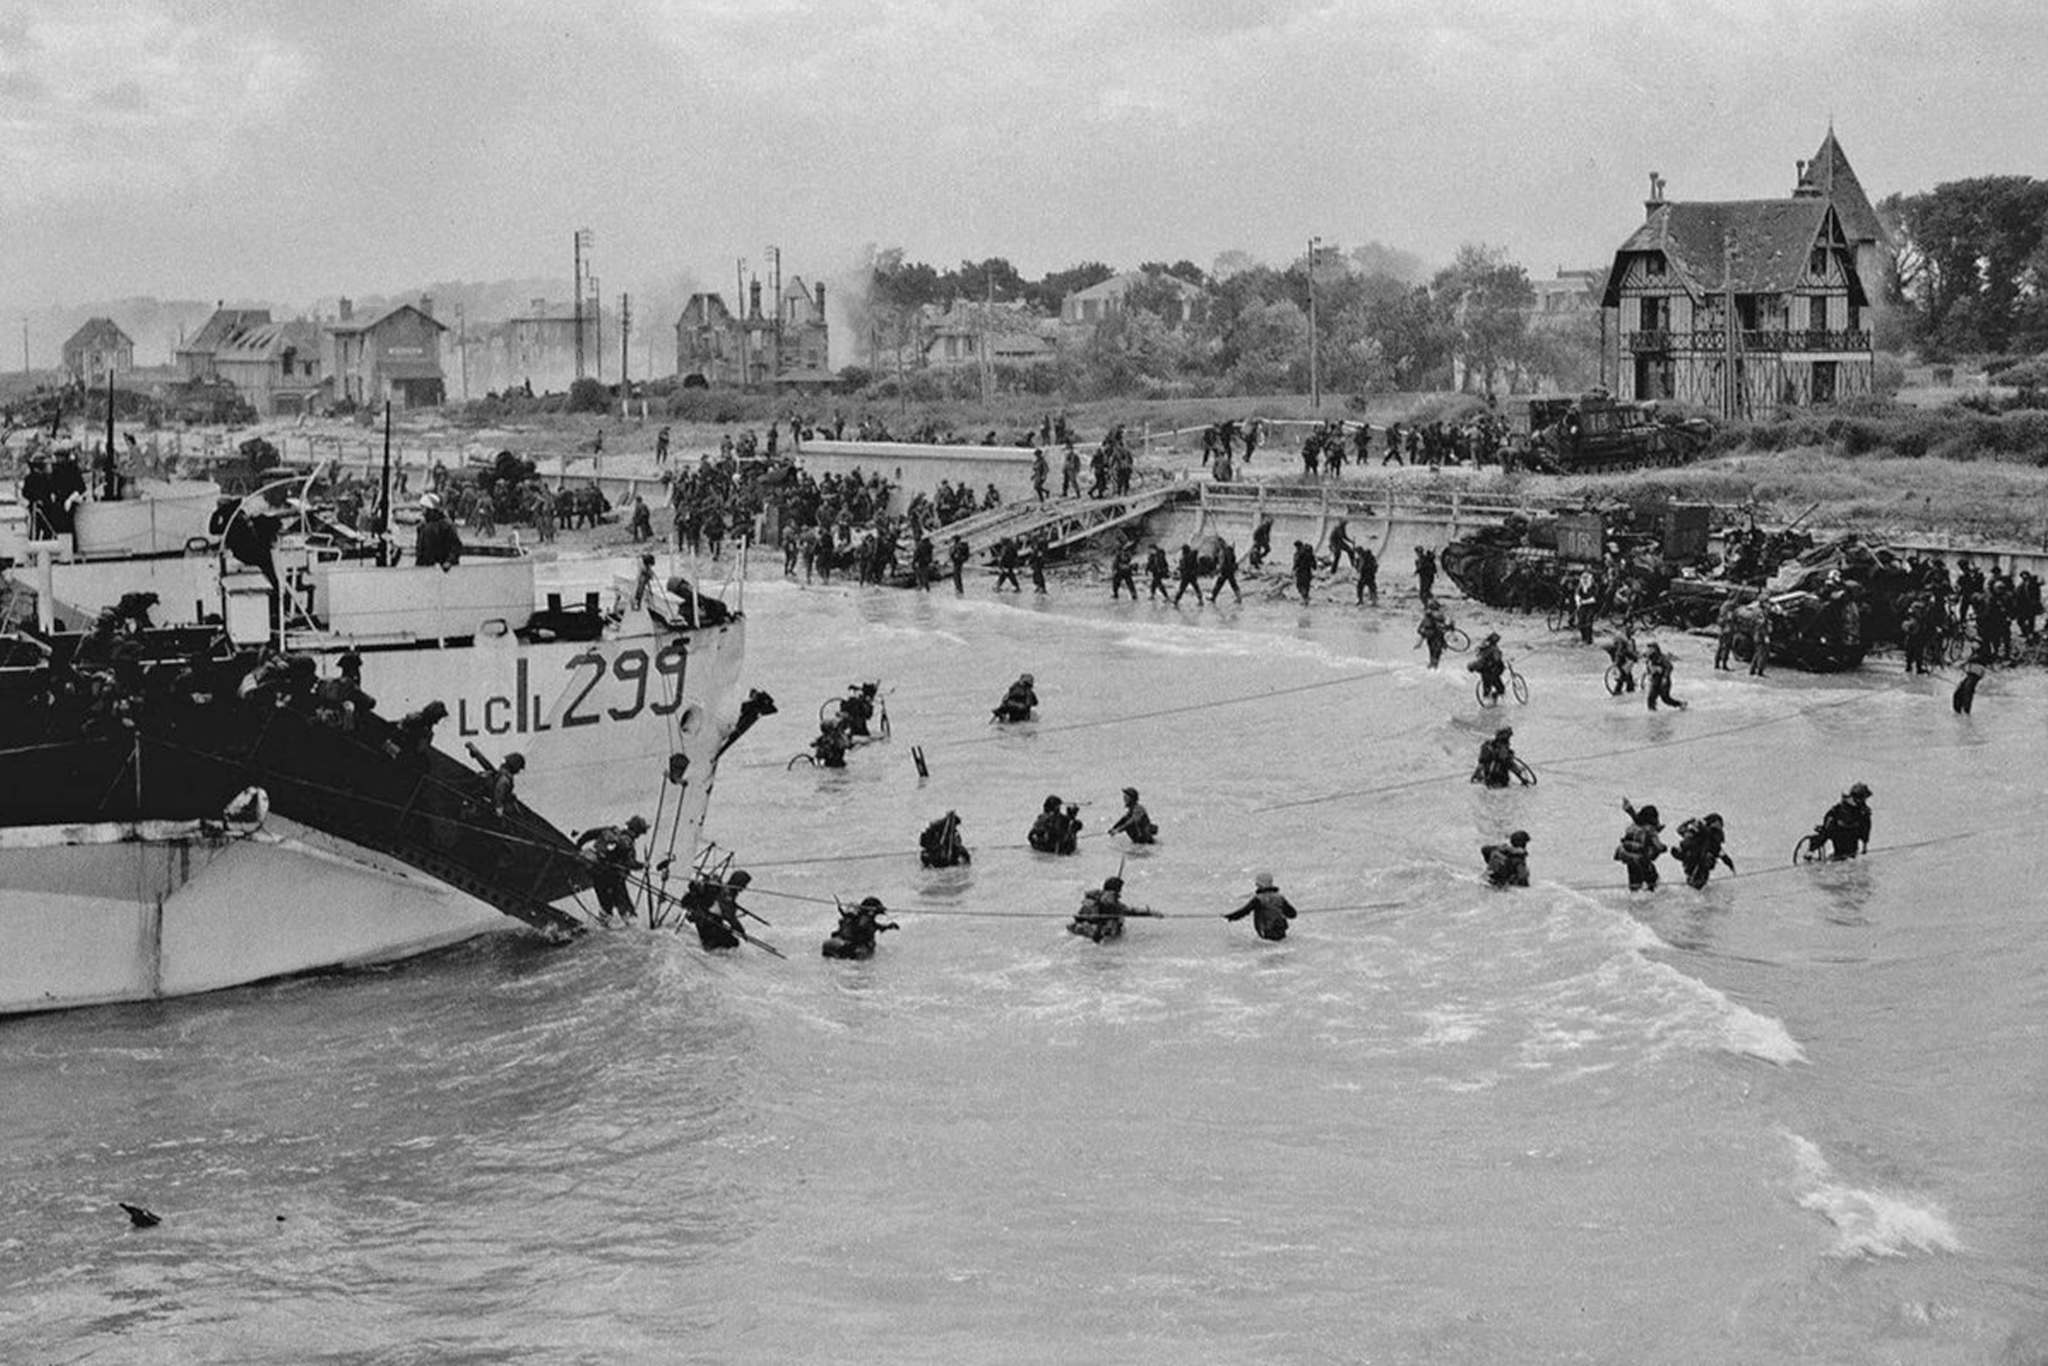 Canadian troops landing at Normandy, France, June 6, 1944. (Supplied / Library and Archives Canada)